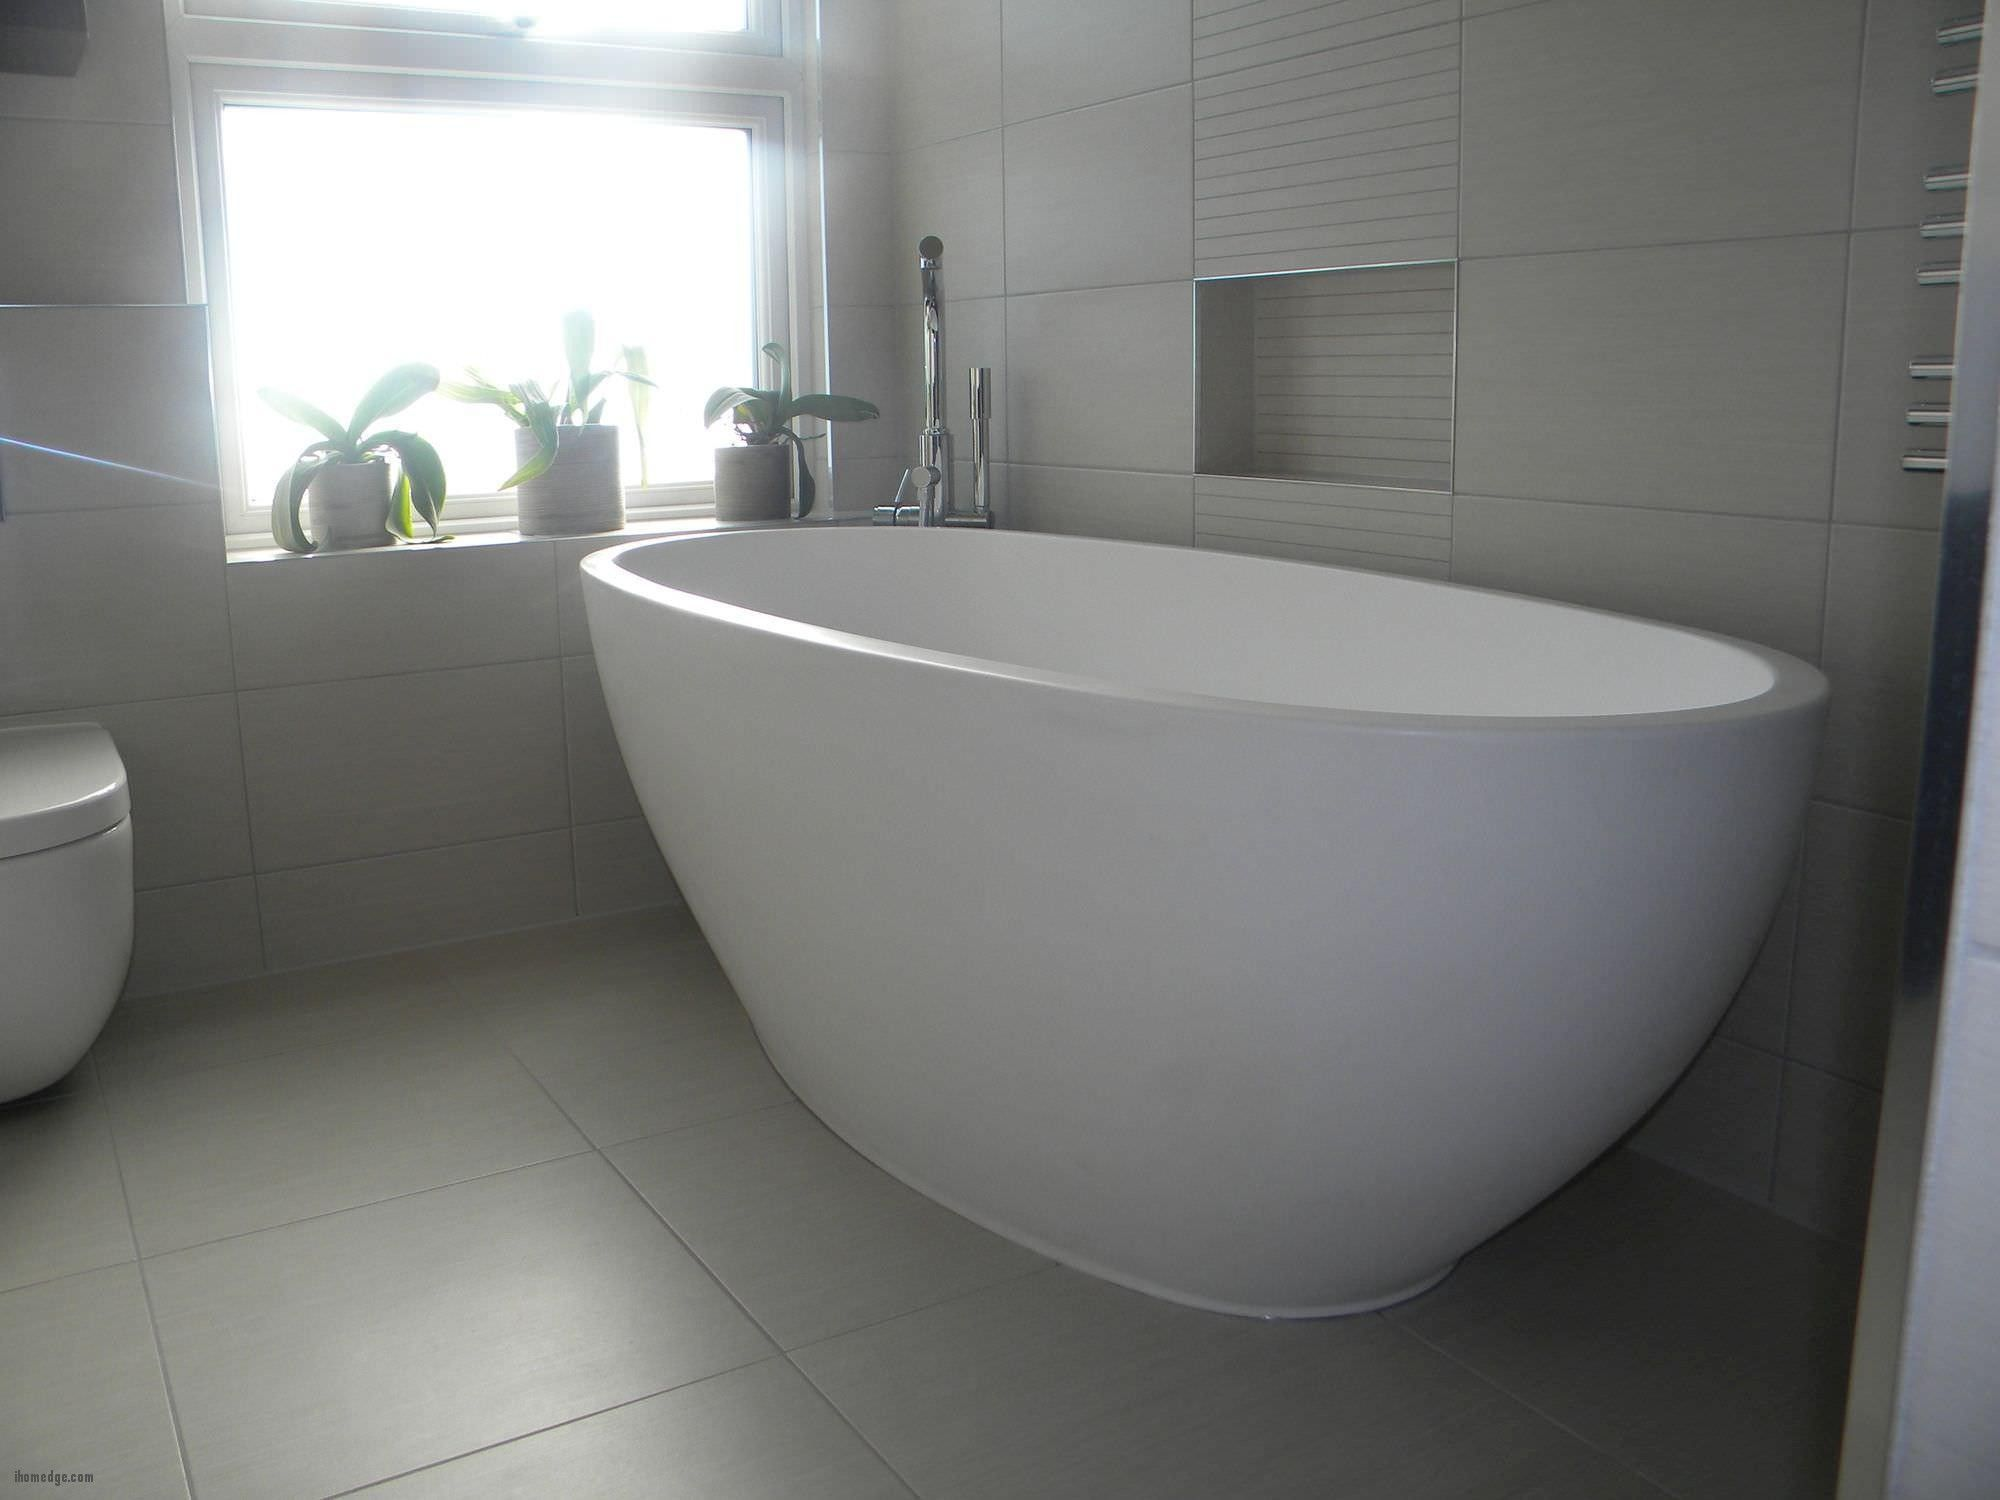 fine Awesome Freestanding Whirlpool Tub , Image of Freestanding ...